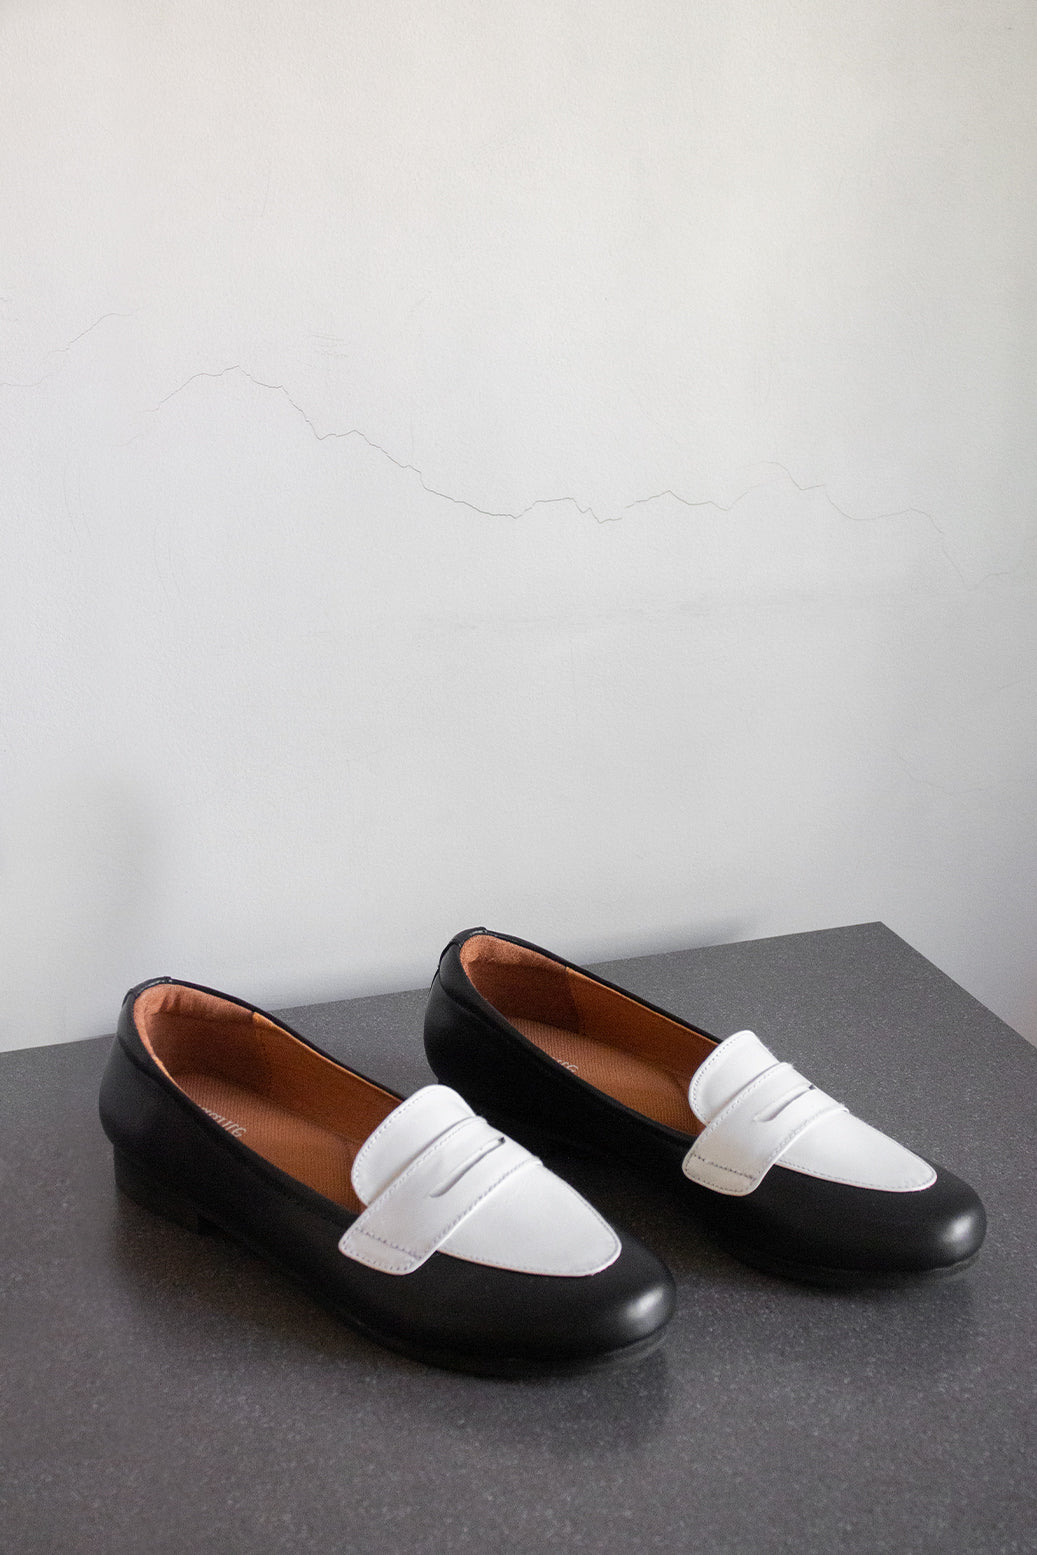 The Penny Loafer in Black & White - andanté, loafers - loafers, loafers leather footwear